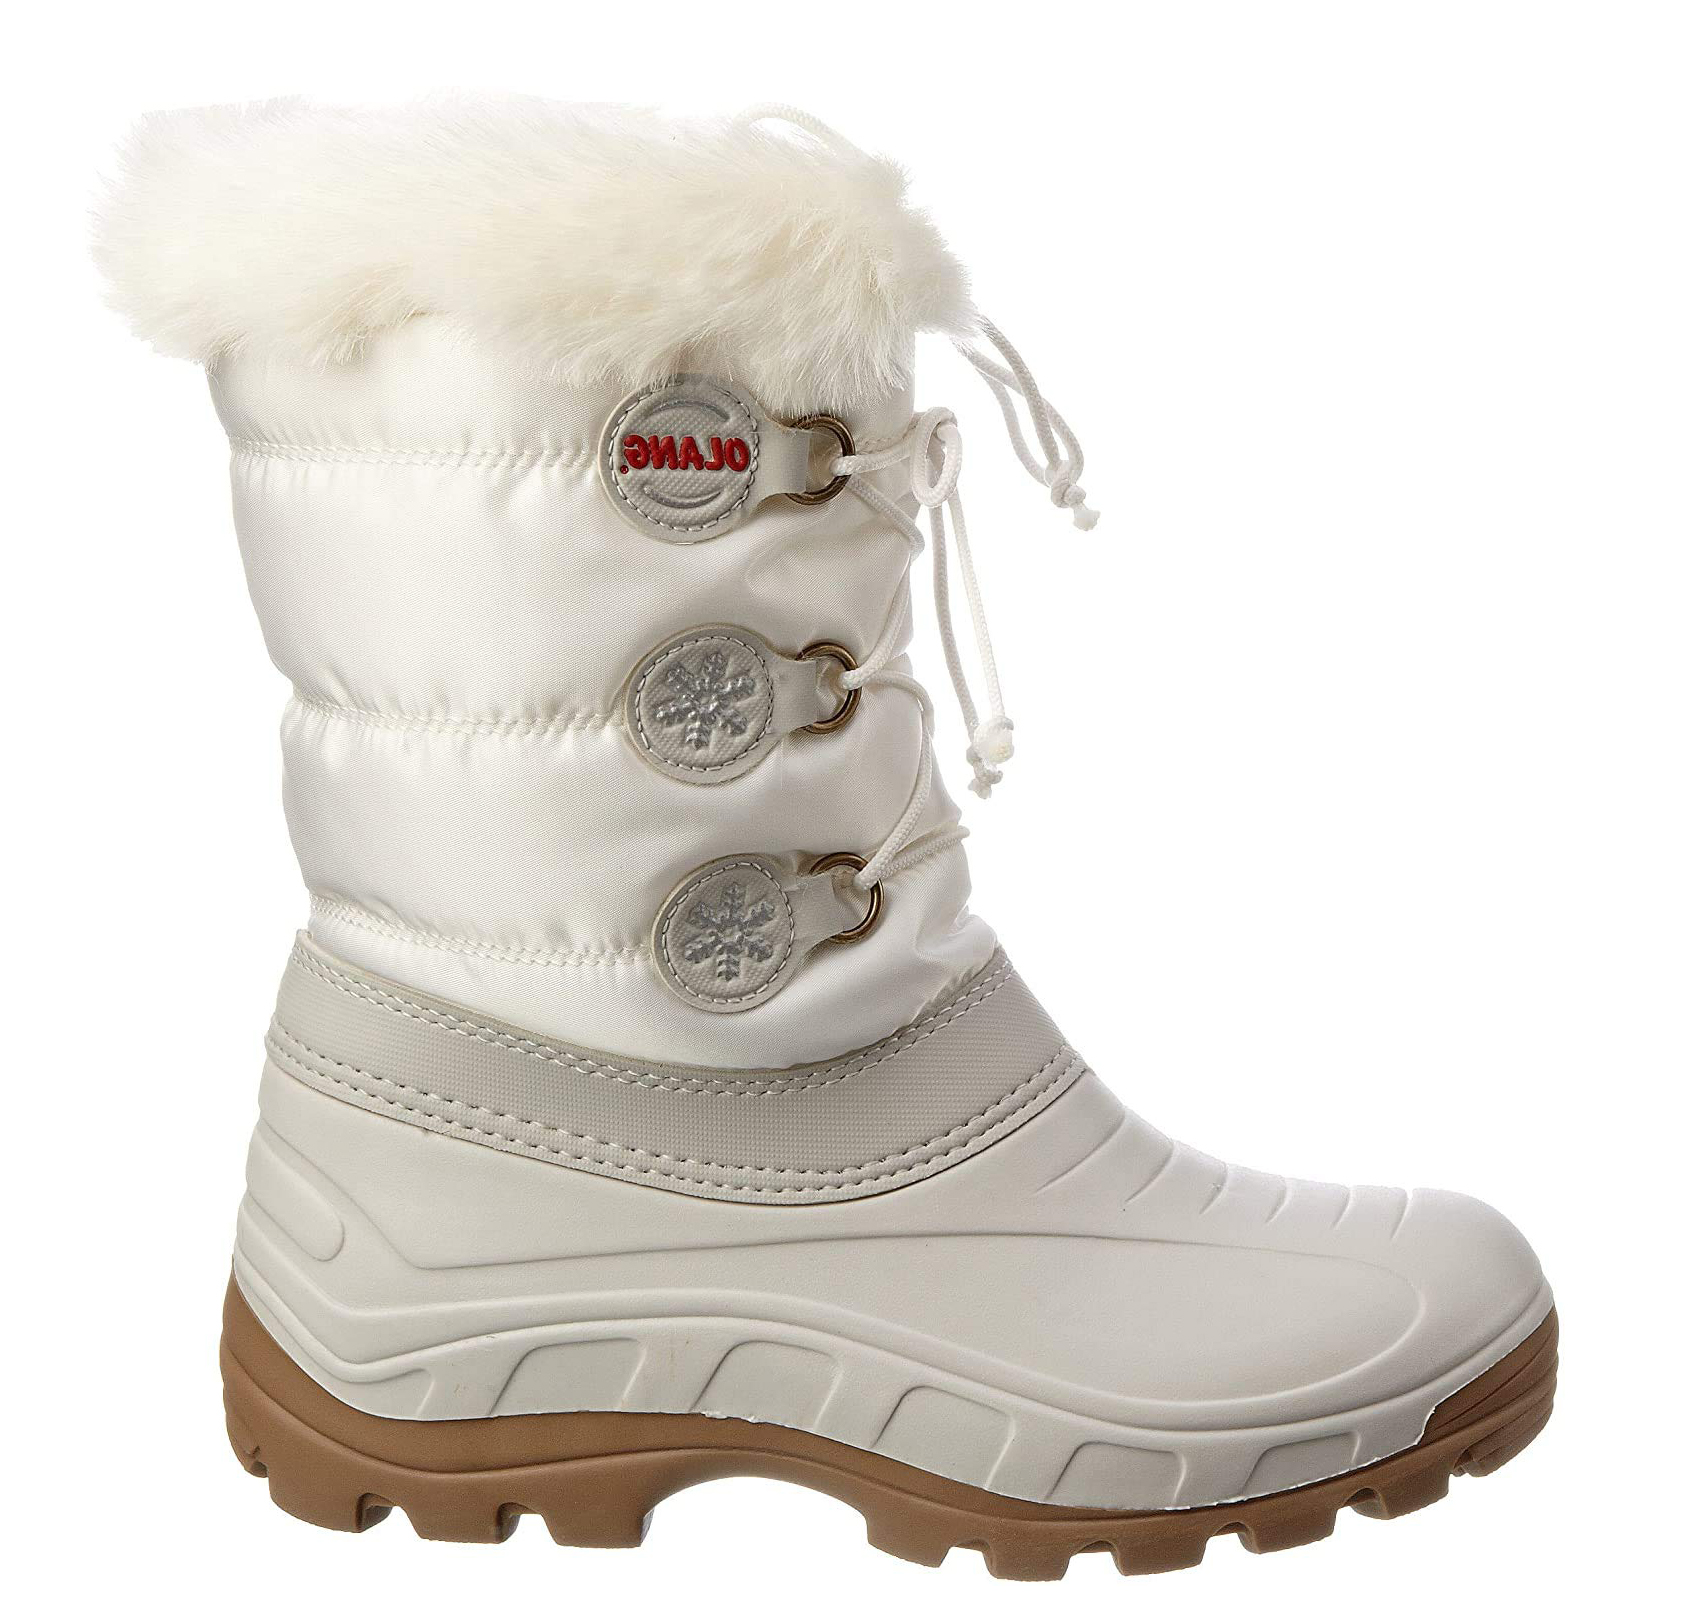 OLANG LADY PATTY WOMAN APRES SKI SHOES-White